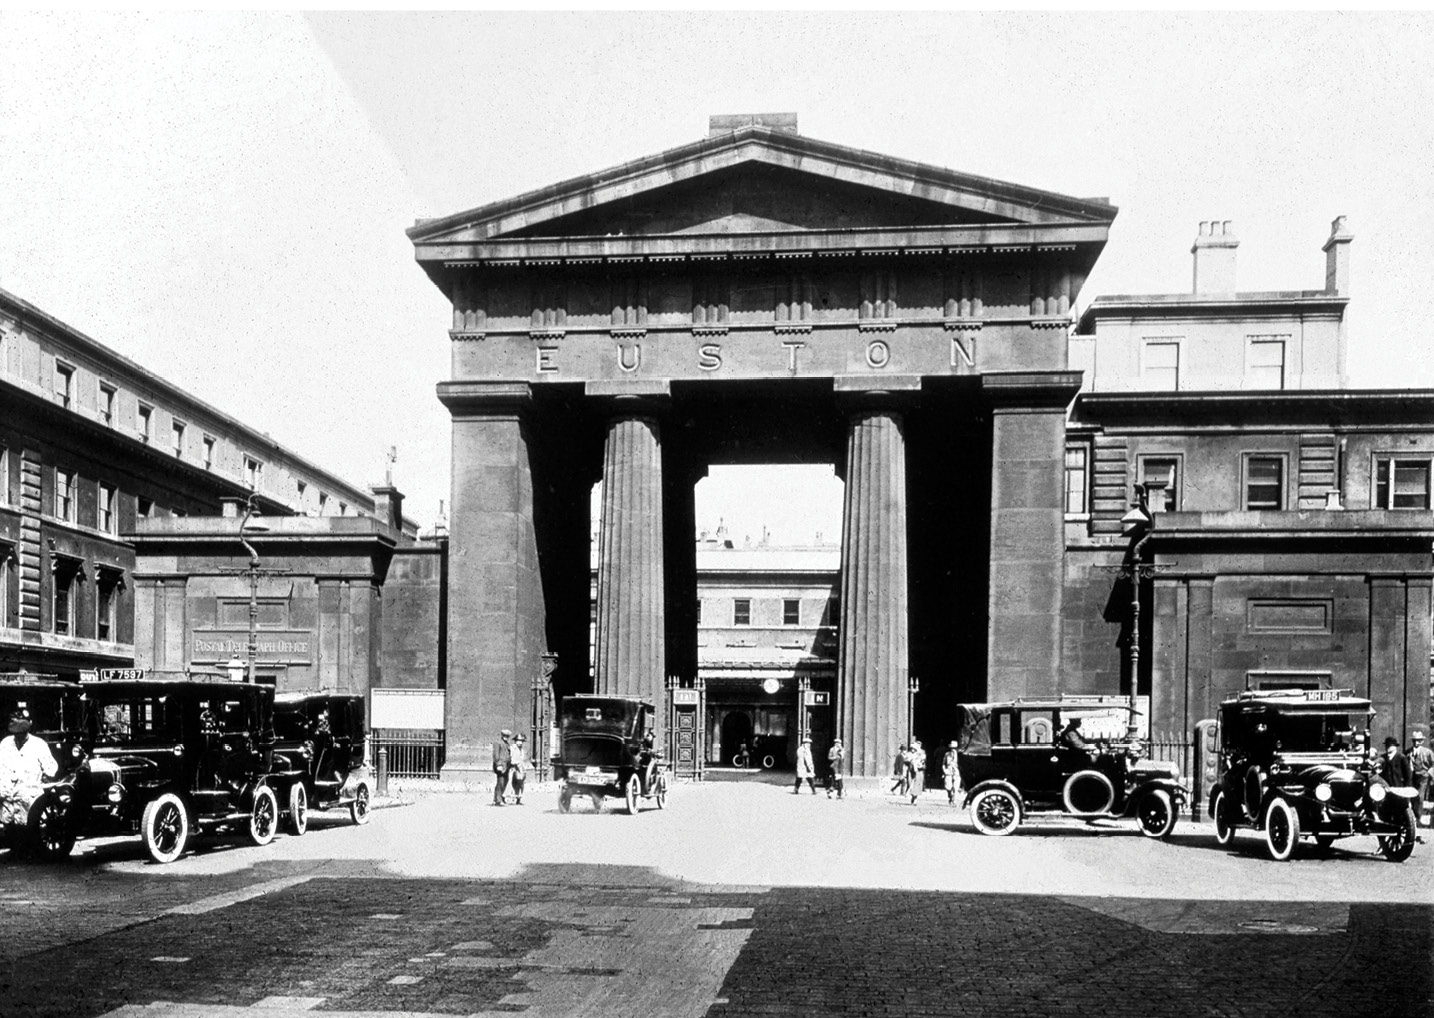 left Two 'lost vistas' in London: Euston Arch, Euston station, London, c.1925 (HEIR ID 44180; photographer unknown), which was built in 1837 and demolished in 1962; and the original Charing Cross station hotel, c.1893 (HEIR ID 36933; photograph sold by Wrench & Son from 1893). Its upper floors were destroyed in the Second World War, and the replacement levels do not follow the original design. The crack seen upper left is present in the original lantern slide.